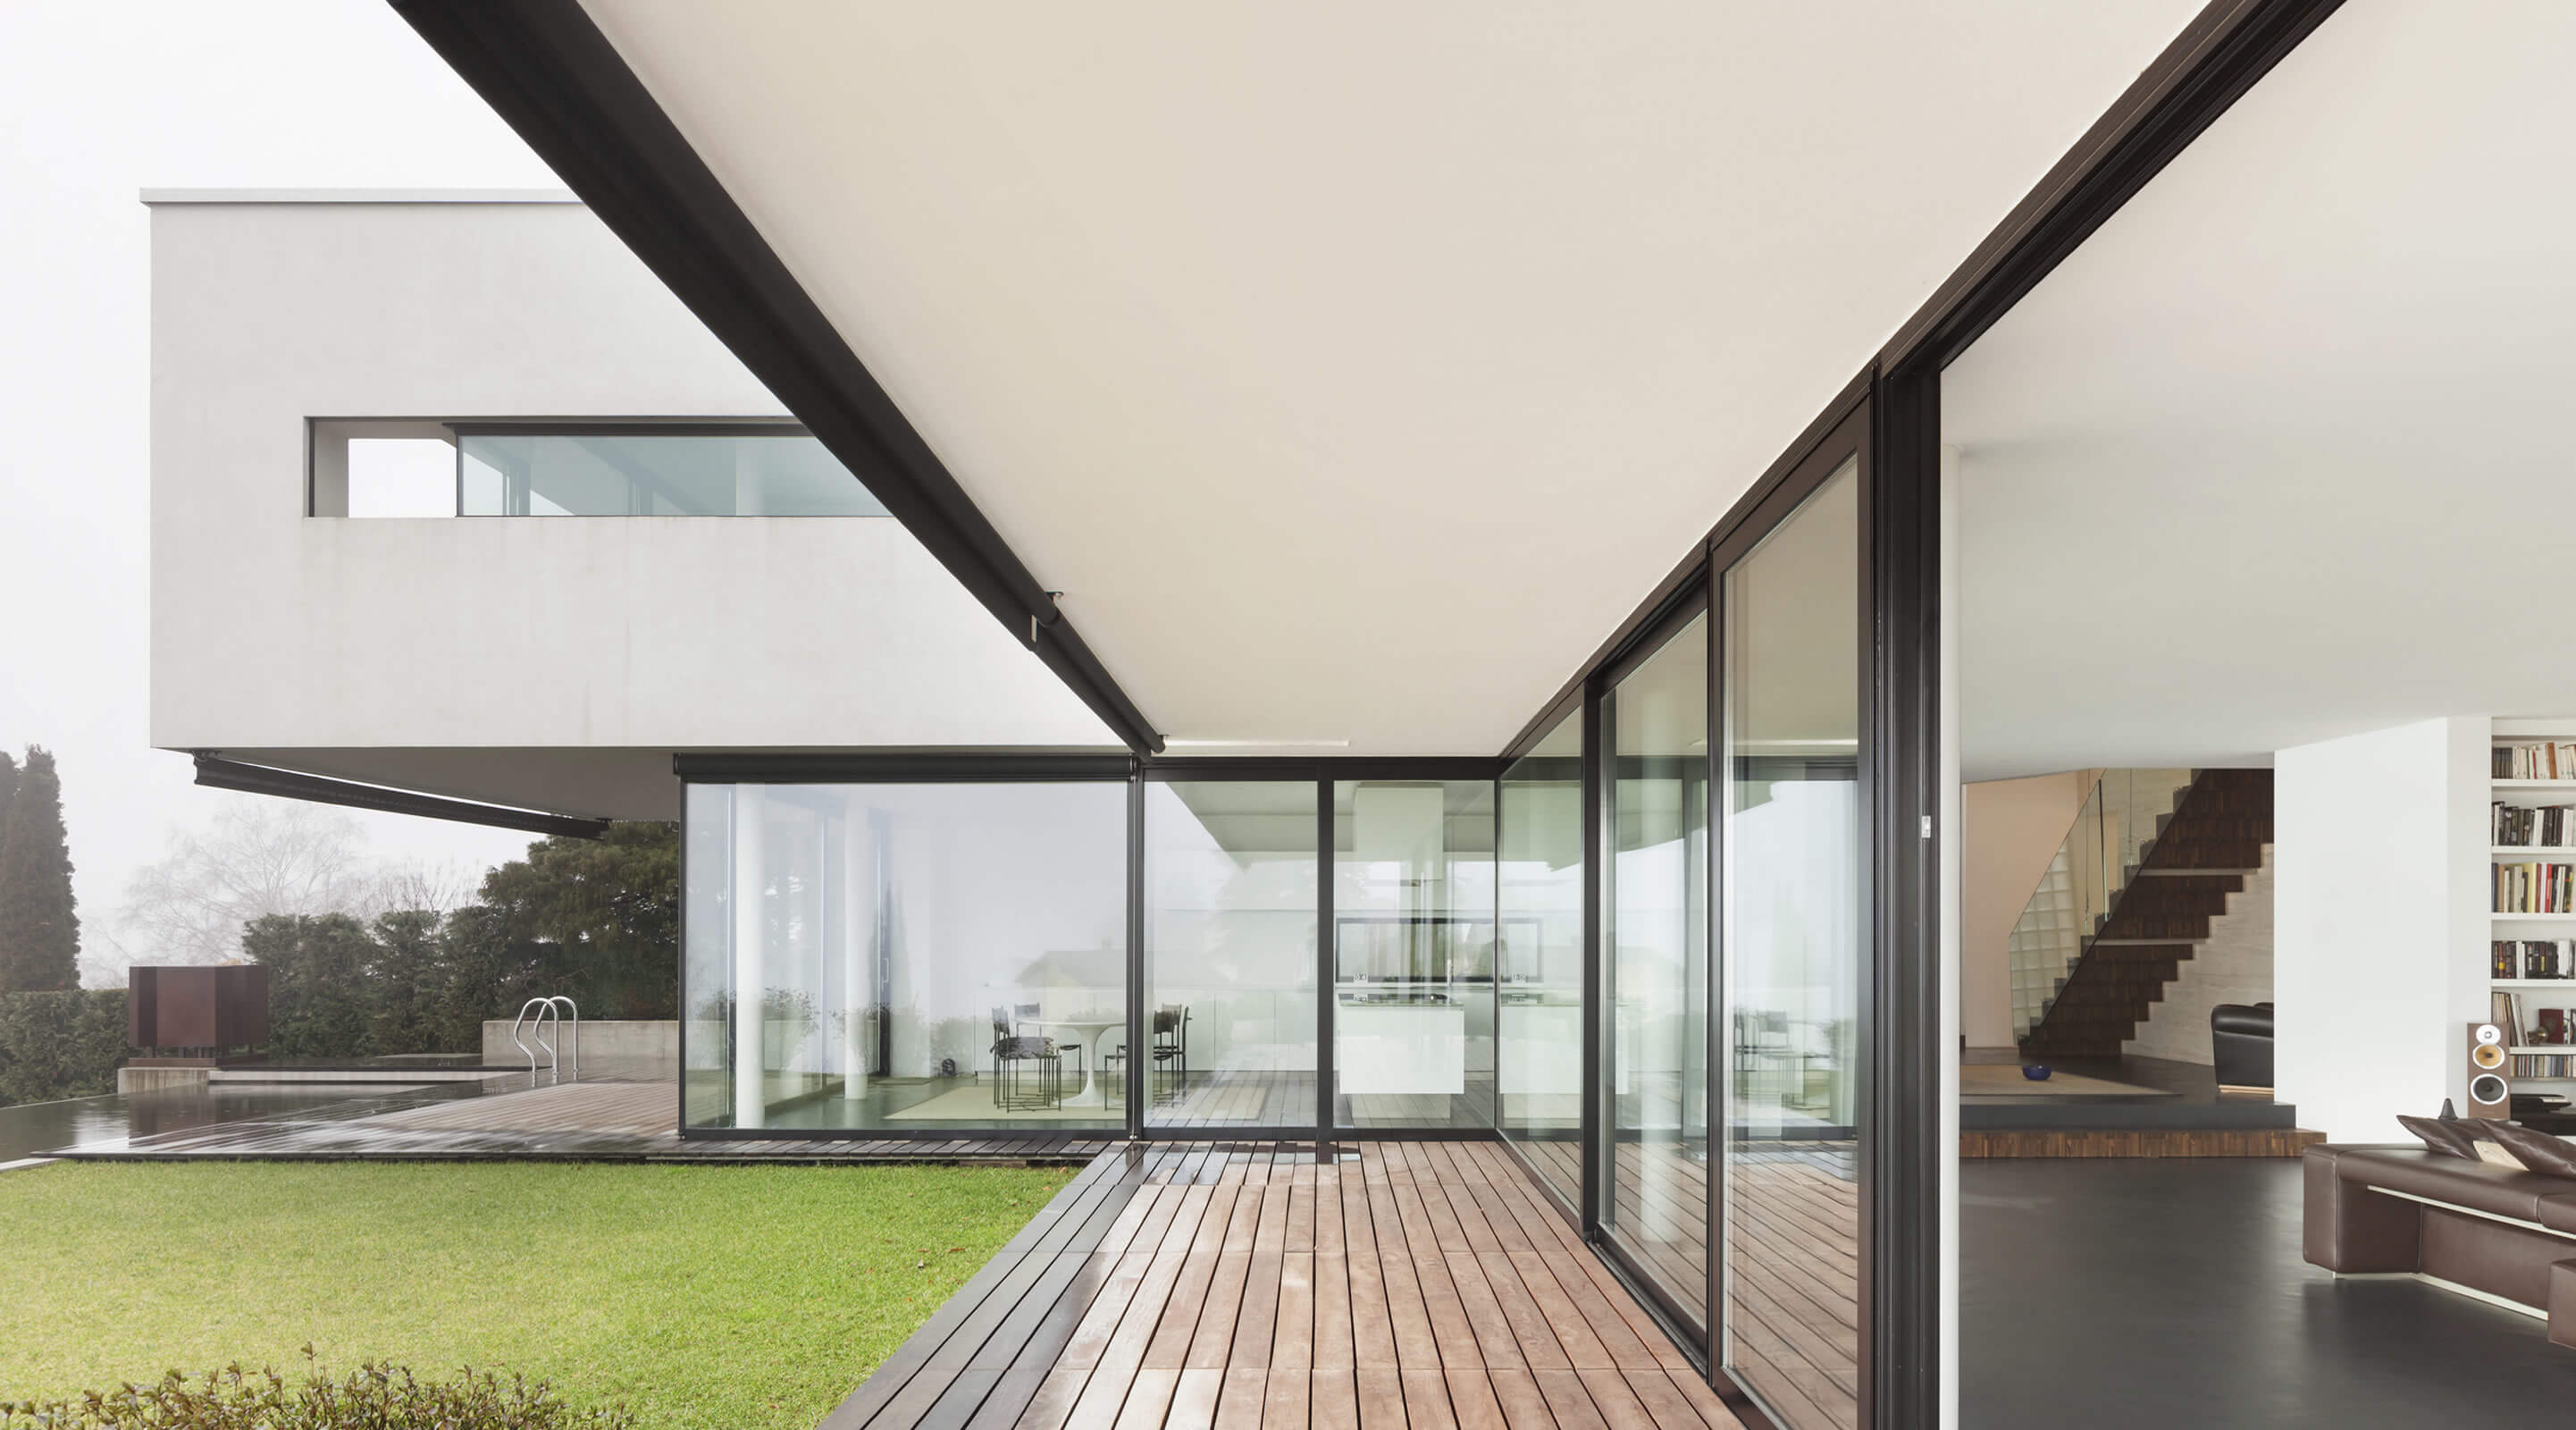 Concrete homes: Are they back in fashion? | Insights from HomeProtect